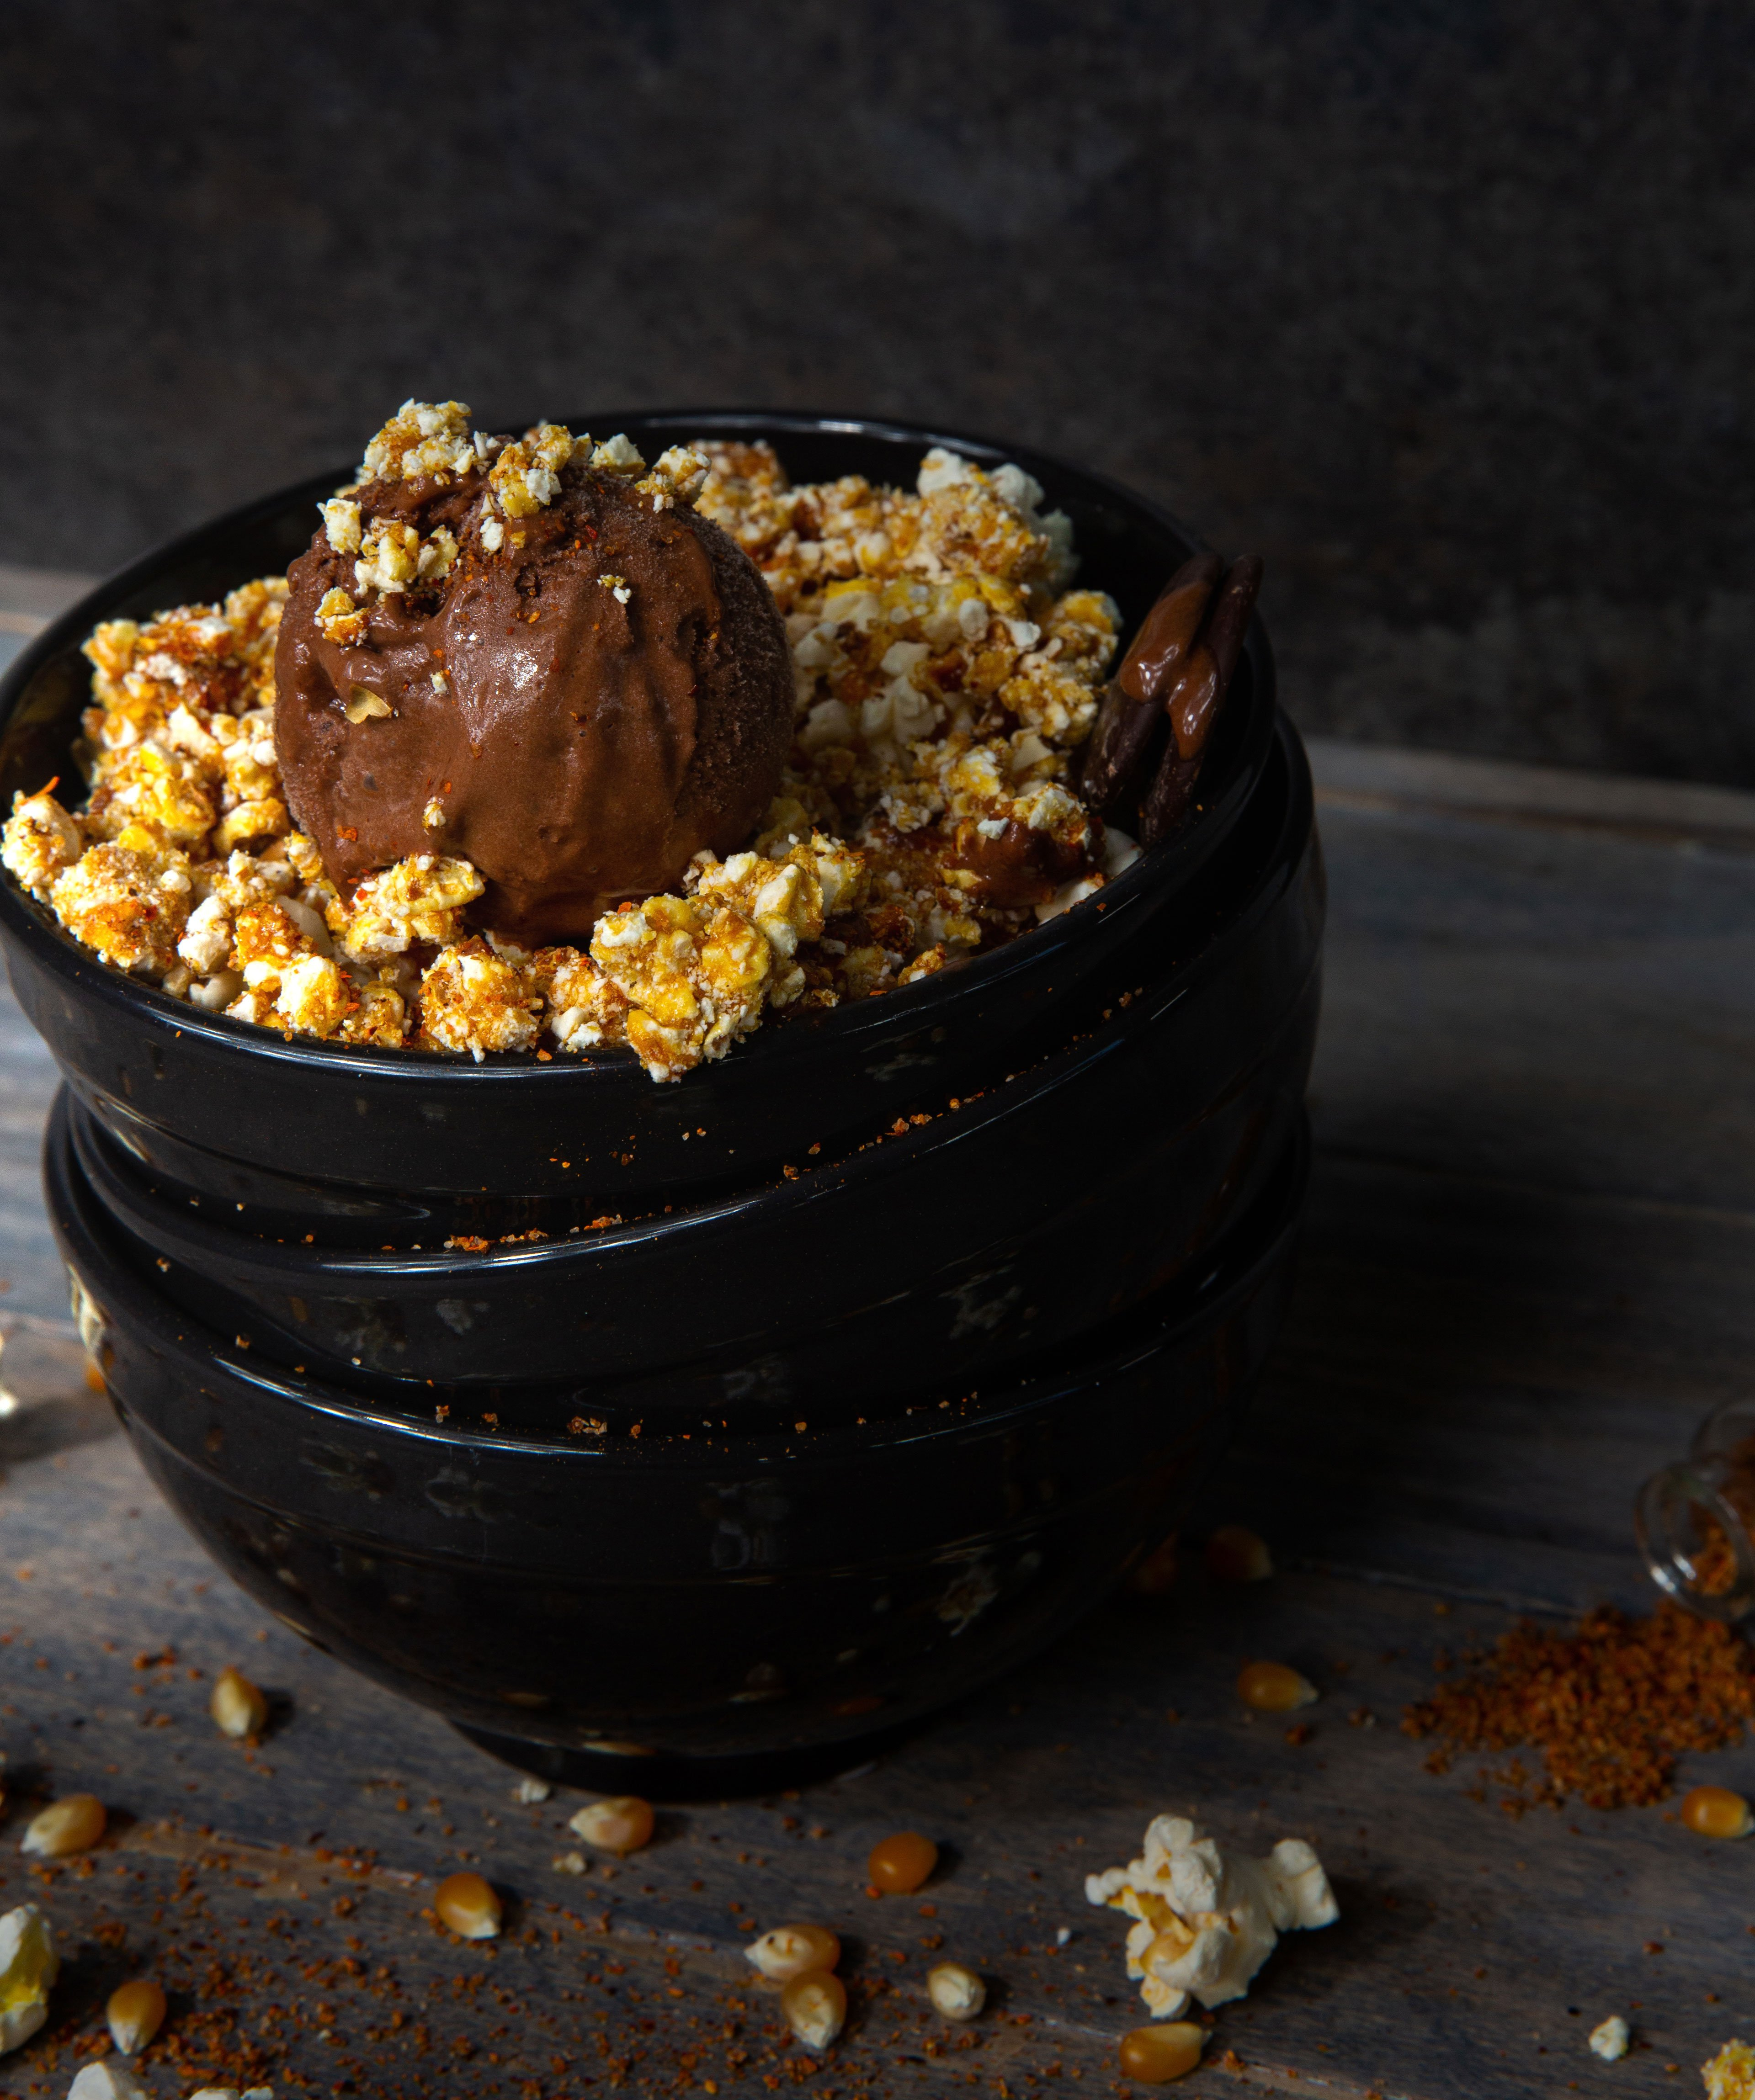 An's Dry Cleaning and specialty produce chocolate popcorn and tajin gelato san diego